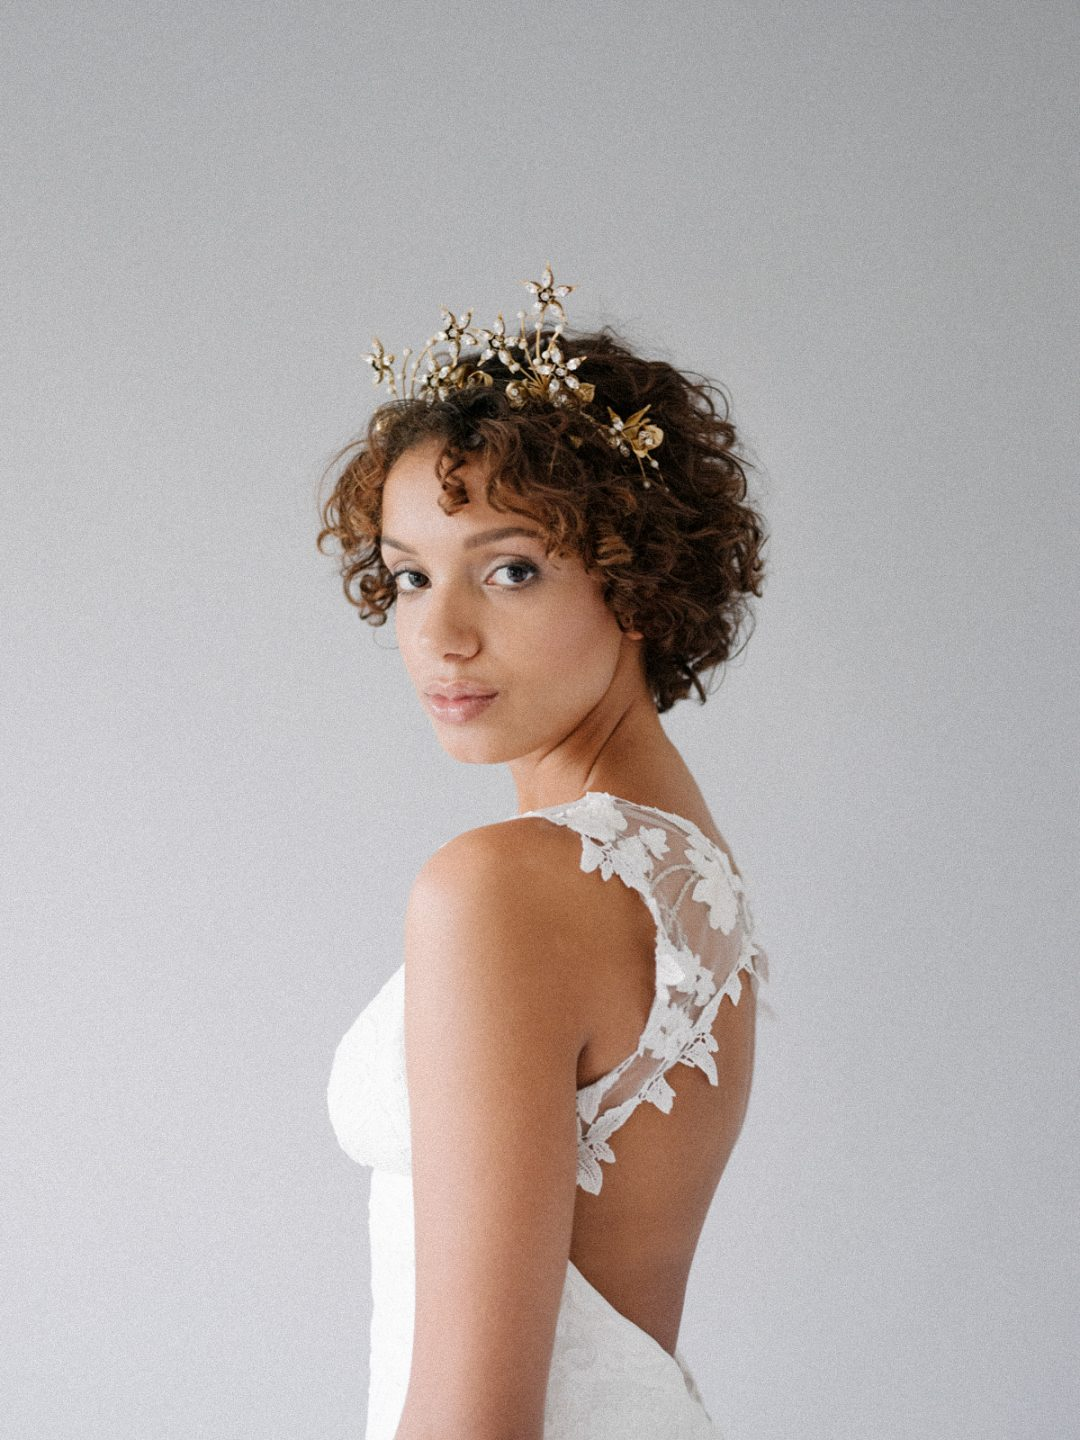 Celestial Bridal Crown - Style 822 - SIBO Designs www.sibodesigns.com